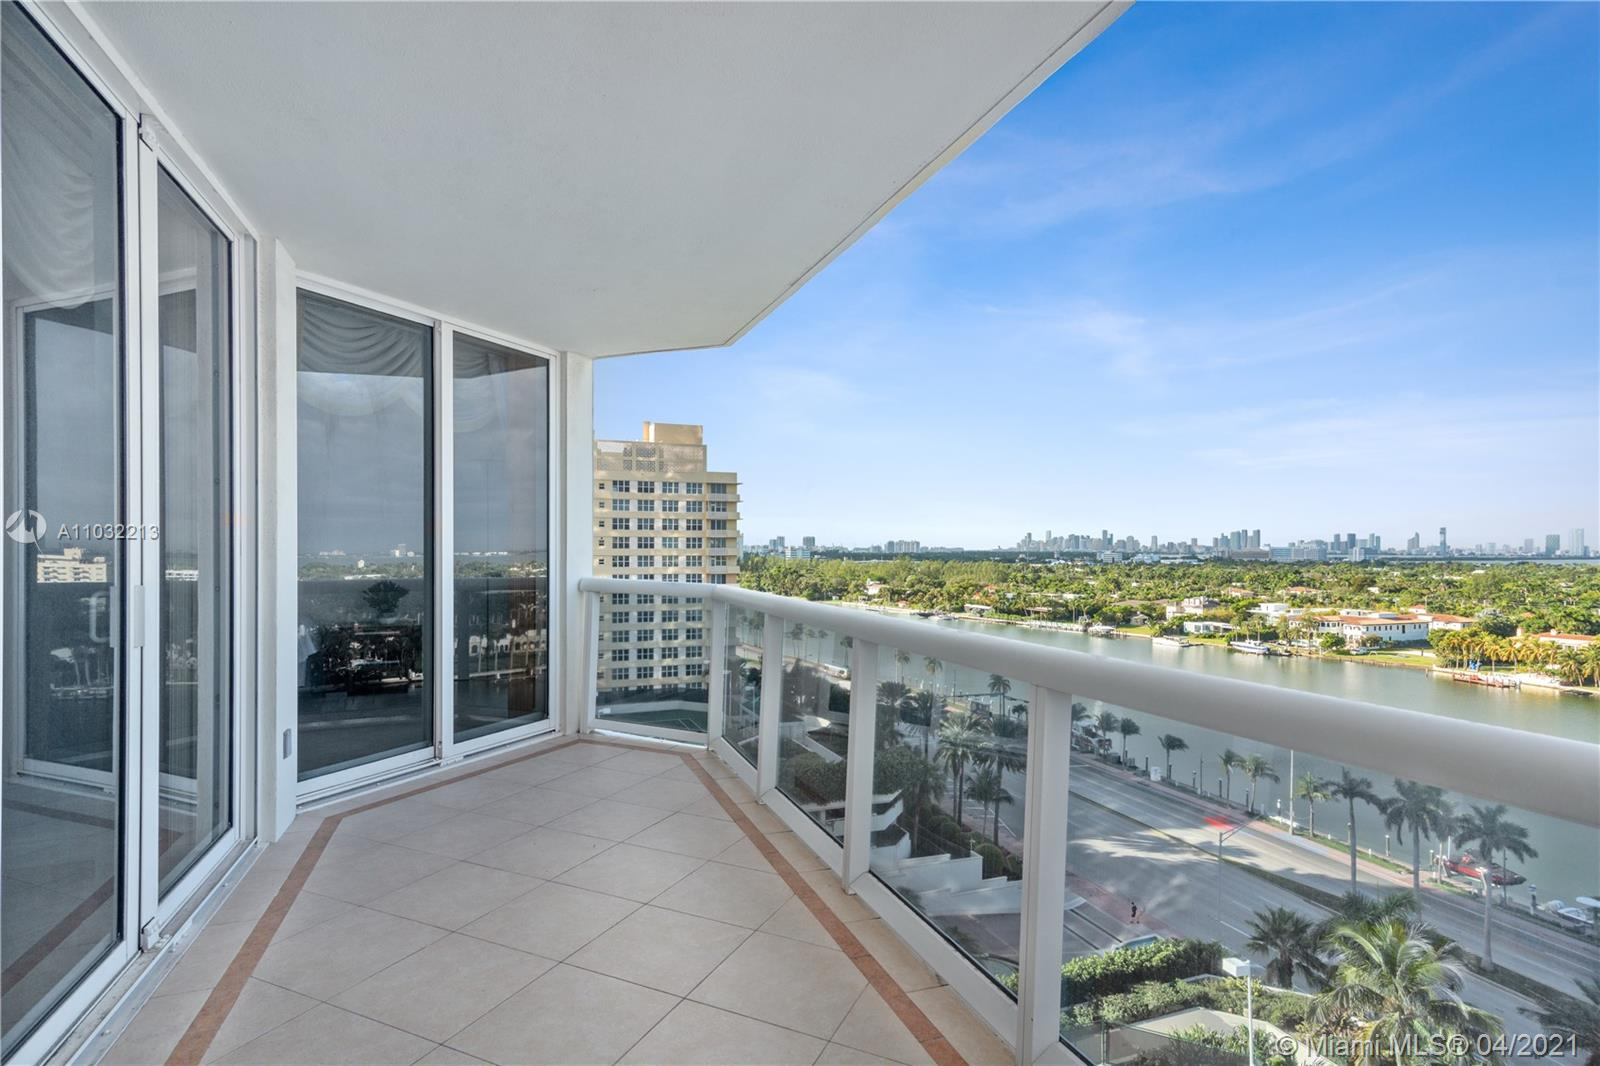 As you enter into this large one bedroom + den and 2 full baths residence you will be greeted with beautiful views of Bay, Intracoastal & City. Spacious living area, large terrace, Floor to ceiling glass windows. Expansive primary suite w/large bath & walk in closet. With its unparalleled location, the Blue & Green Diamond is one of Miami Beach's most sought after addresses. Enjoy luxury beachfront living with five-star resort-style amenities including 24-hour security and valet, lighted tennis court, large pool, spa, fitness center equipped with the latest technology, poolside café and more.